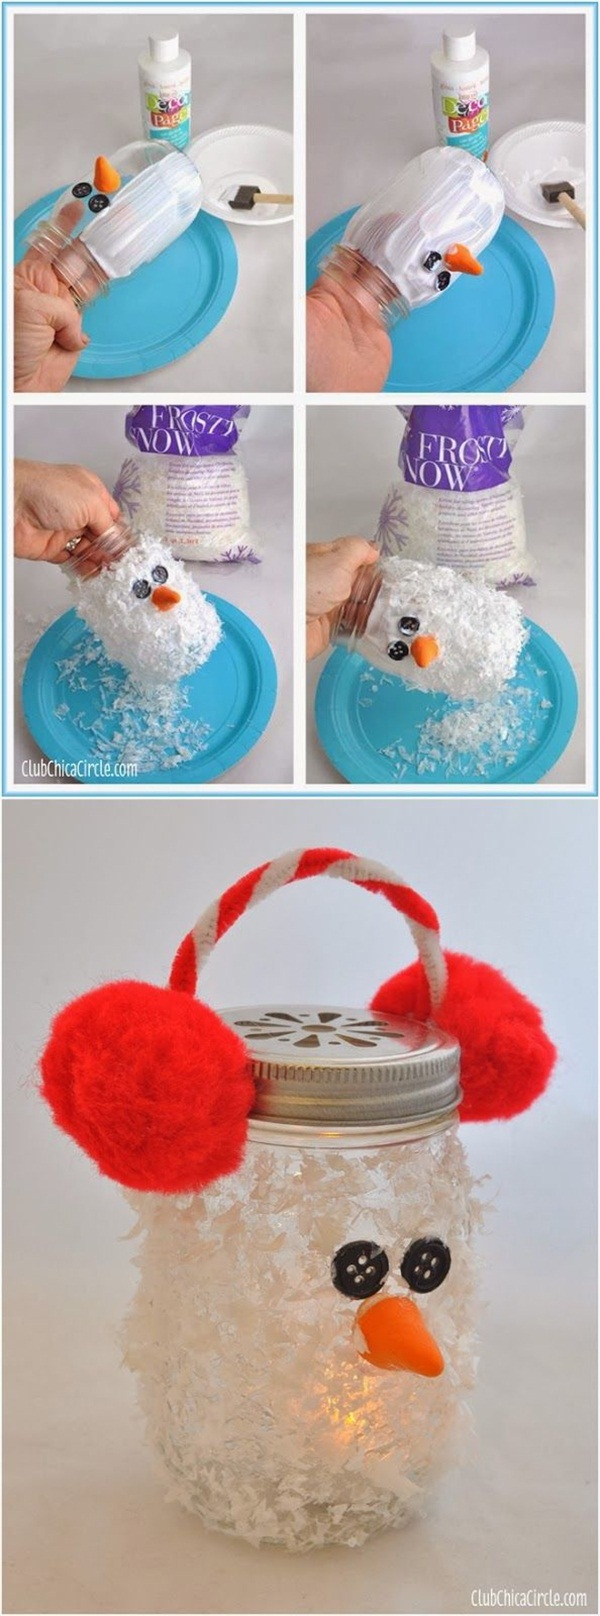 37 Super Easy DIY Christmas Crafts Ideas for Kids